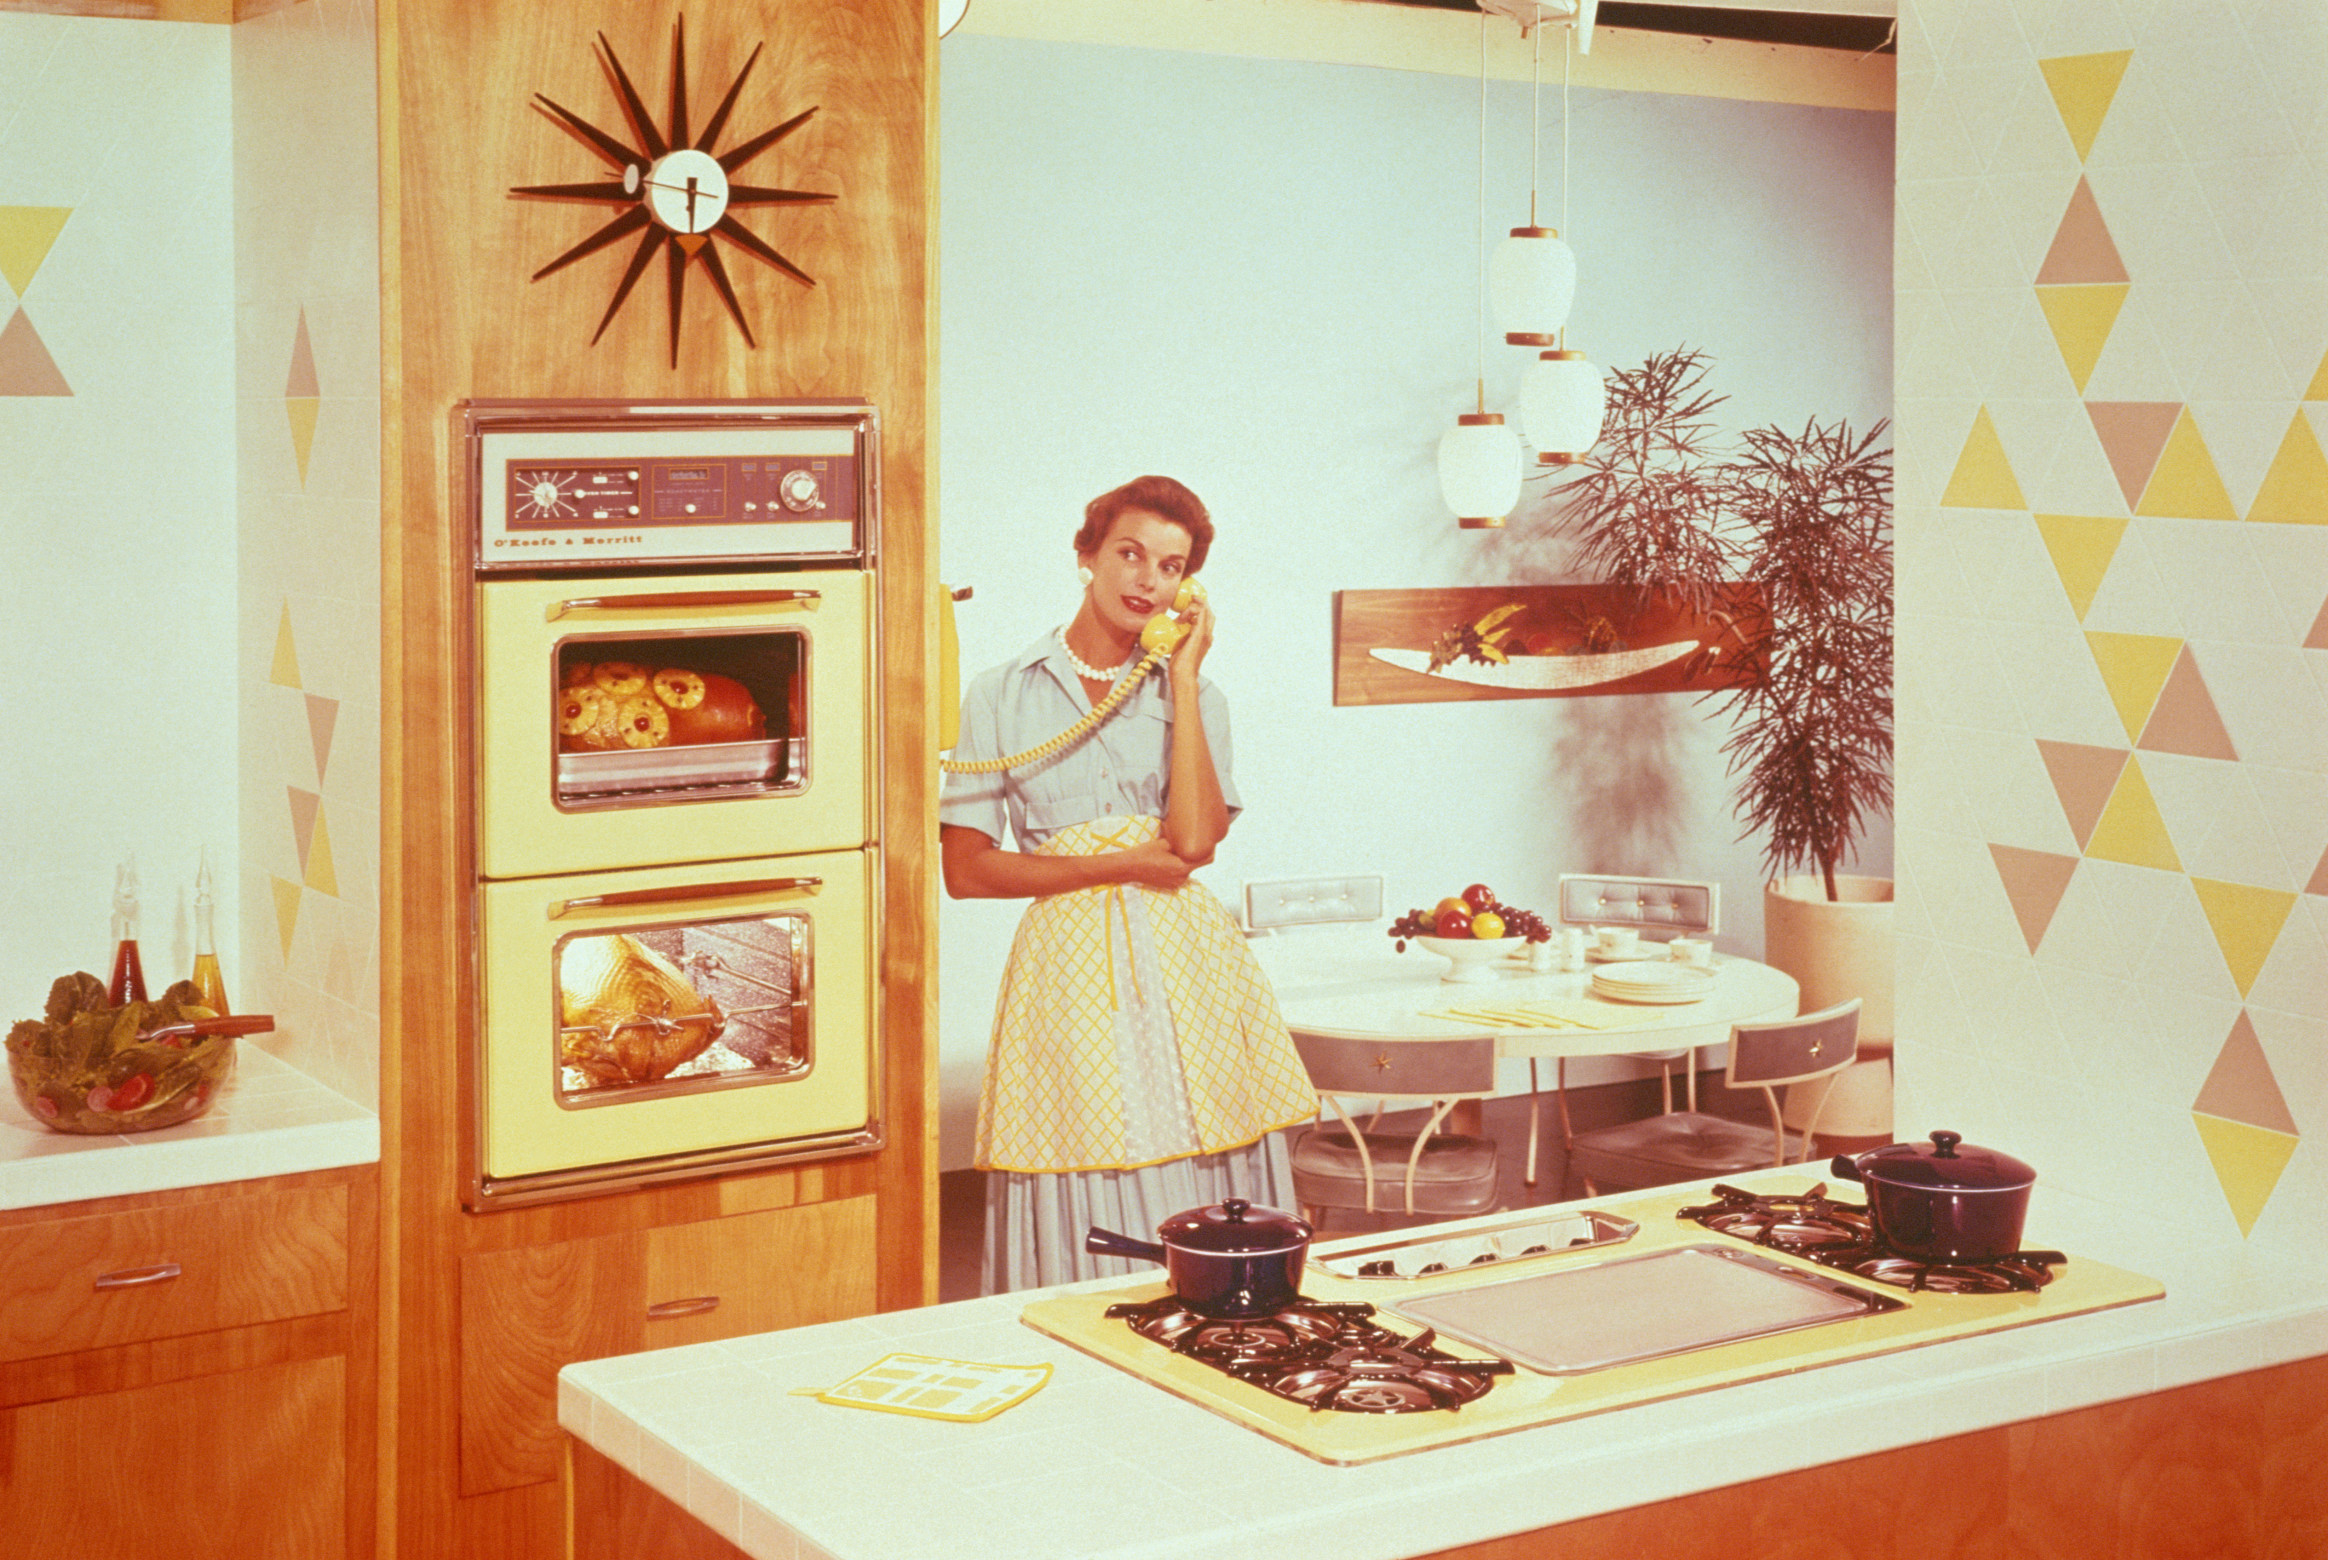 WOMAN SPEAKS ON THE PHONE IN A KITCHEN